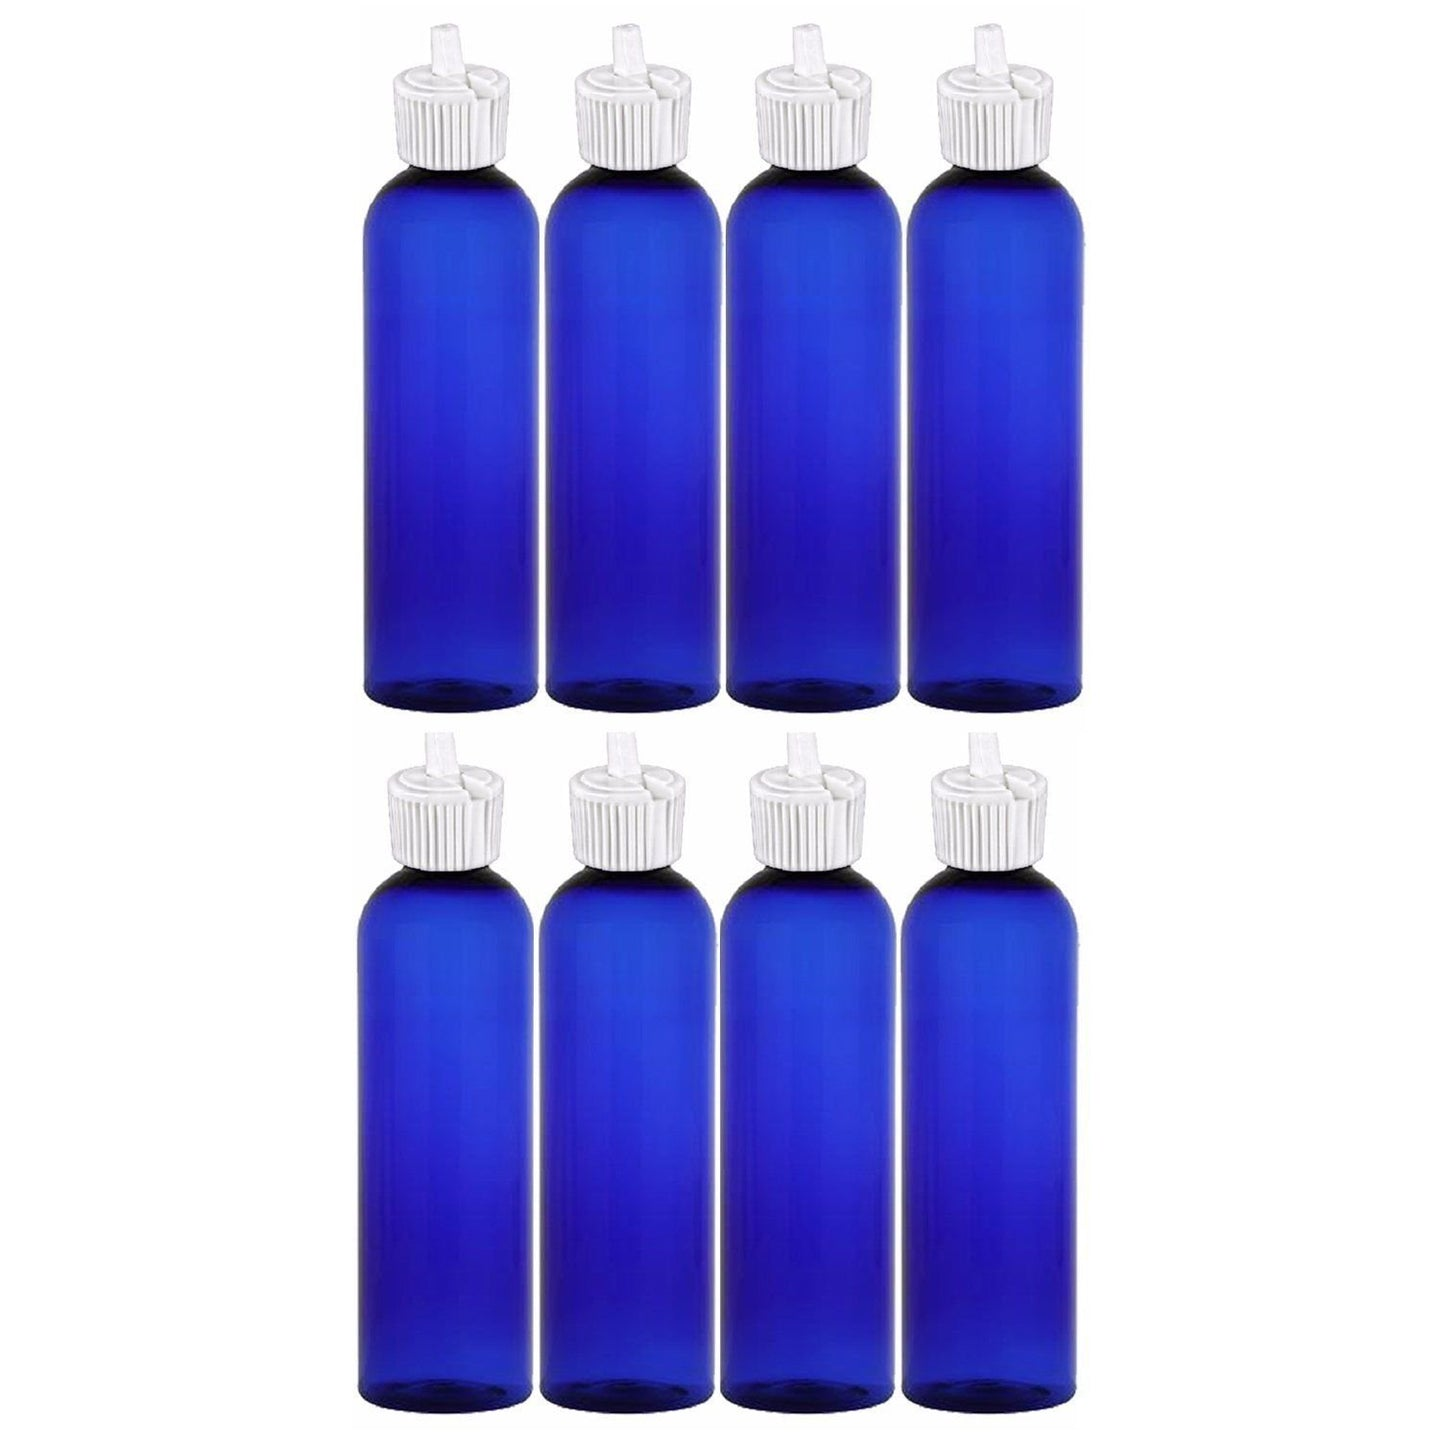 MoYo Natural Labs 4 oz Squirt Bottles, Squeezable Empty Travel Containers, BPA Free PET Plastic for Essential Oils and Liquids, Toiletry/Cosmetic Bottles (Neck 20-410) (Pack of 8, Blue)